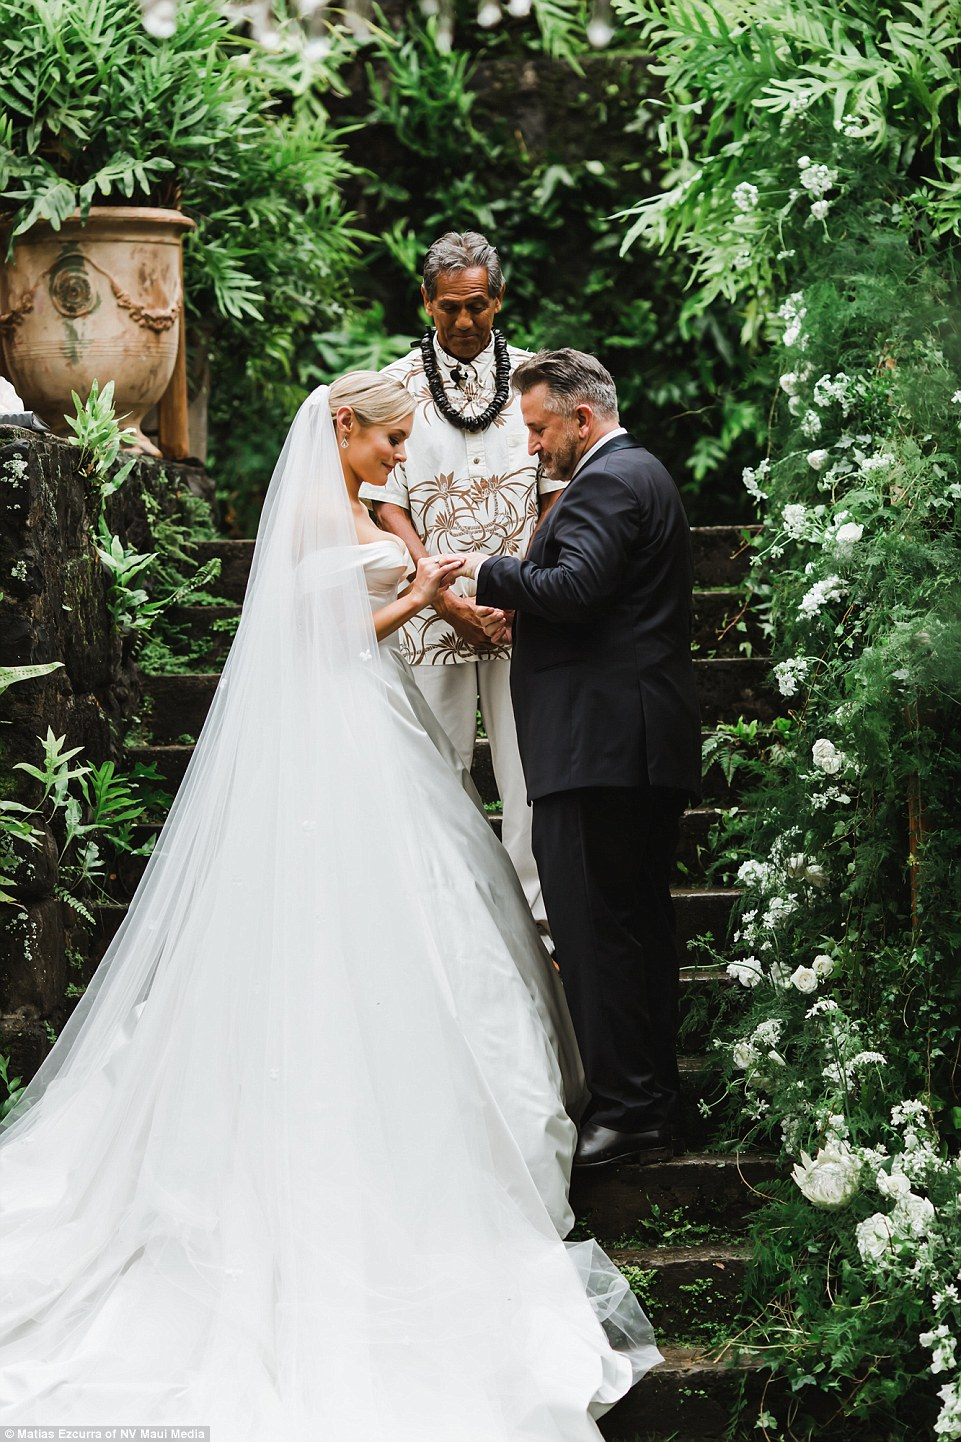 PICTURED Anthony LaPaglias Hawaiian Wedding To Alexandra